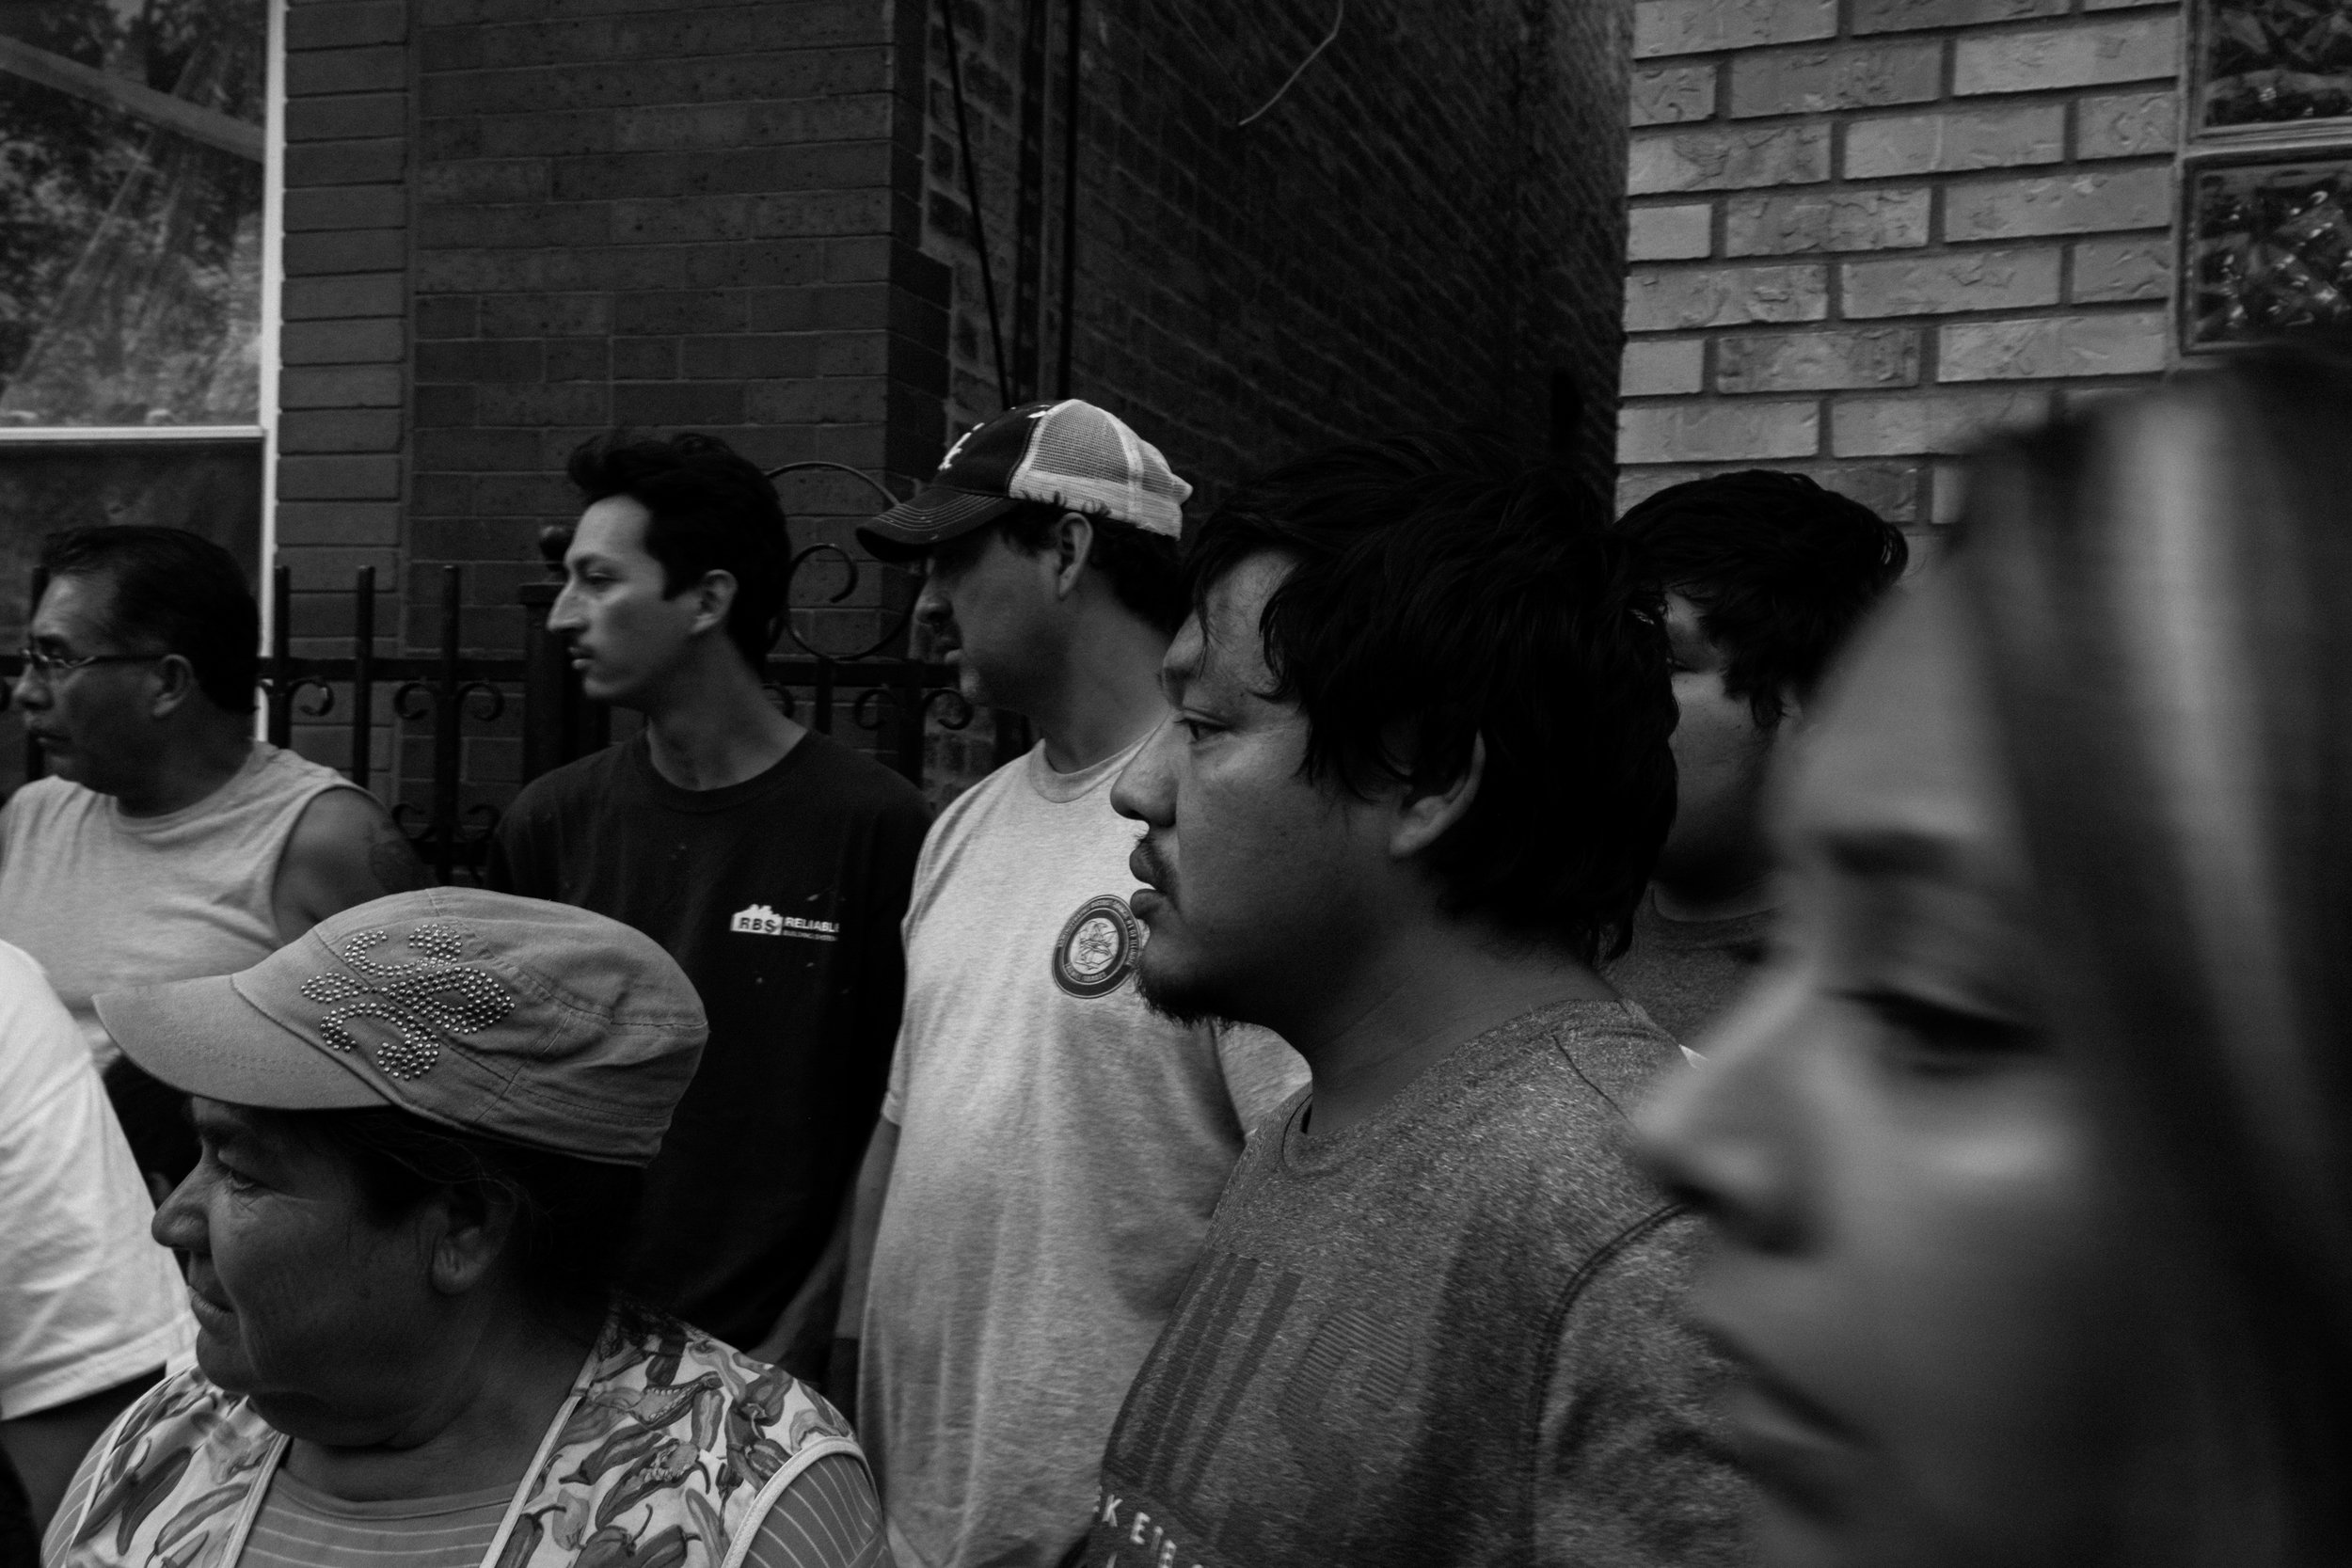 Pilsen residents gathered outside a popular pizza restaurant as Jason Patlen, a victim of a gun-related crime, bled on the ground in 2017.